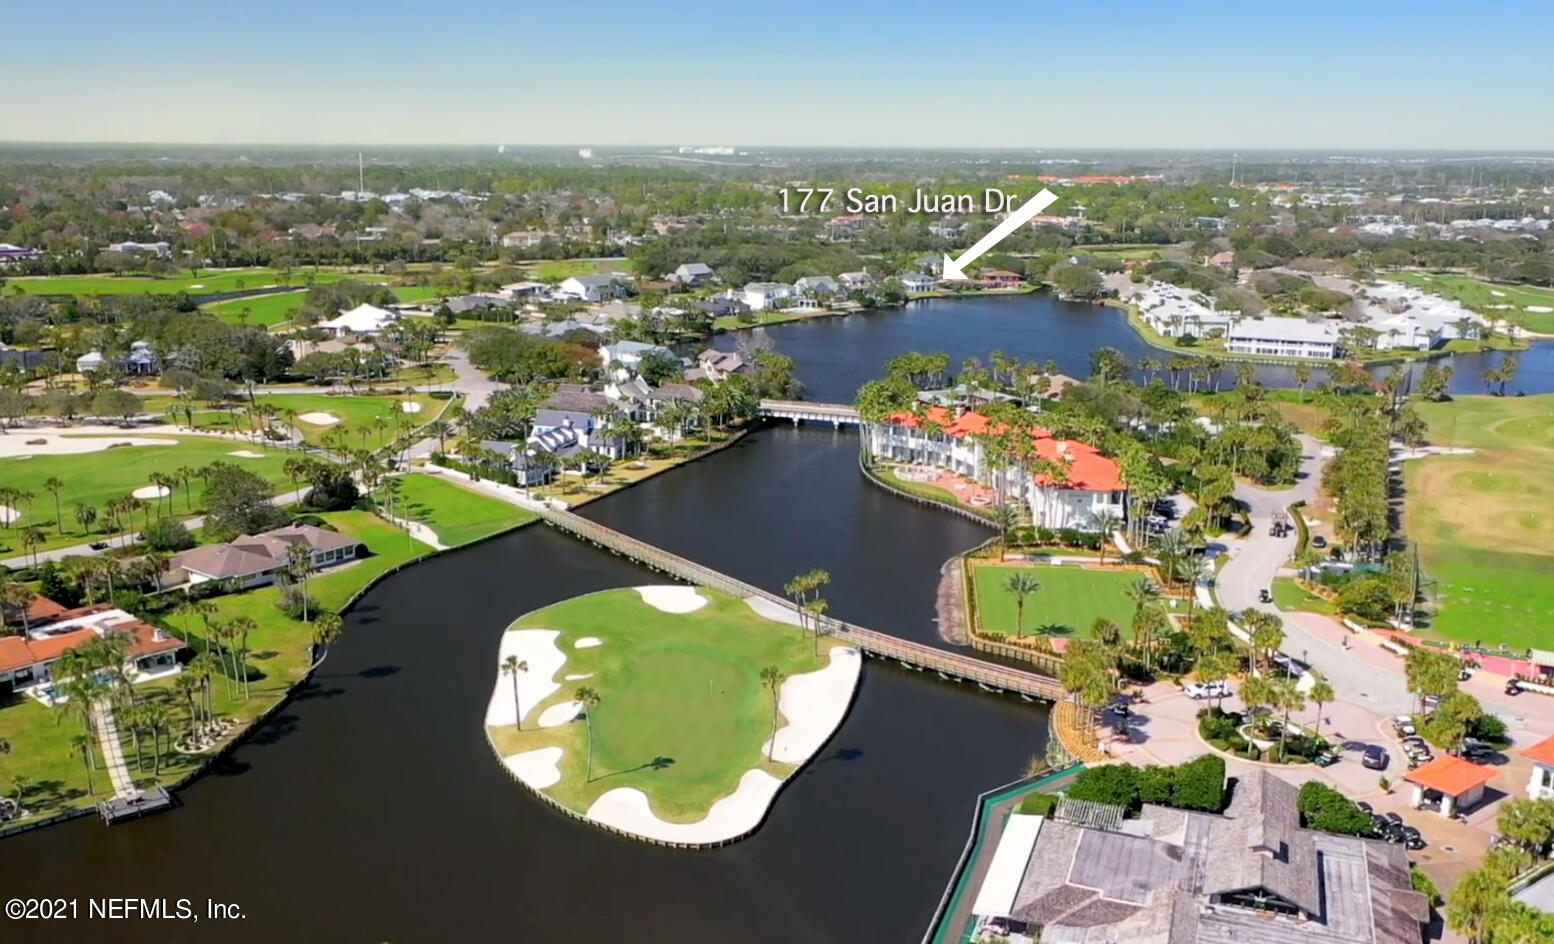 Great Investment property in Old Ponte Vedra Beach! 105 ' Lake frontage! Dock may be extended to 1000 sq ft. Large lot w only 20 ft setbacks allowing for more room to build , a better view and walking access to the PV Inn and Club which is much appreciated on weekends as club parking becomes a challenge!  Sandwiched between two pristine 18 hole golf courses and situated on a stretch of beautiful lagoon shoreline the veranda and covered balcony face East to the Atlantic Ocean. Sleep to the sound of the waves crashing on golden sandy beaches just a quick stroll away.  The proximity of the home to the Ponte Vedra Inn and Club allows the homeowner to take full advantage of all the amenities of the club. Within walking distance! Two 18 hole Golf courses, Racquet Club, Gym, Spa and Oceanfront d A complete renovation and addition were recently completed on this home! A new master bedroom and adjacent sitting area were added upstairs as well as a spacious covered balcony. Amenities include full wet bar, TV and surround sound speaker system. The master bathroom  has a spa like feel to it with travertine floors and shower tile as well as a state of the art kohler shower system. Two separate vanities with his and her own personal sinks, separate toilets and two spacious walk- in master closets. Washer and dryer connection so that you may have a laundry on both floors. The covered balcony off the master bedroom catches a nice tropical breeze and the views of the lake from here are magnificent. The Eastern exposure provides a cool shade for evening entertainment as the summer sun sets in the west. The ground floor hosts an open living area with ground floor master bedroom option as well with views of the lake and a 2nd bedroom on the opposite side of the home also enjoying water views. Almost every room in the home has a view of  water and nature. Impact resistant slider doors and windows let in an abundance of light! You feel very protected from the elements in this home as it was built very solidly. The kitchen is a chef's dream with an oversized Quartzite countertop for food prep and entertaining and built in induction cooktop. Subzero refrigerator, thermador oven and microwave with lower warming tray! Semi walk in pantry has tons of space as well as under the prep island there are cabinets all the way around front and back!  Upgraded kitchen also features a 102 Bottle Subzero wine cooler, humidor capable! Perfect for entertaining guests!. A new bulkhead and dock were recently added! Come home to Old Ponte Vedra and enjoy the relaxed atmosphere and best beaches Northeast Florida has to offer!